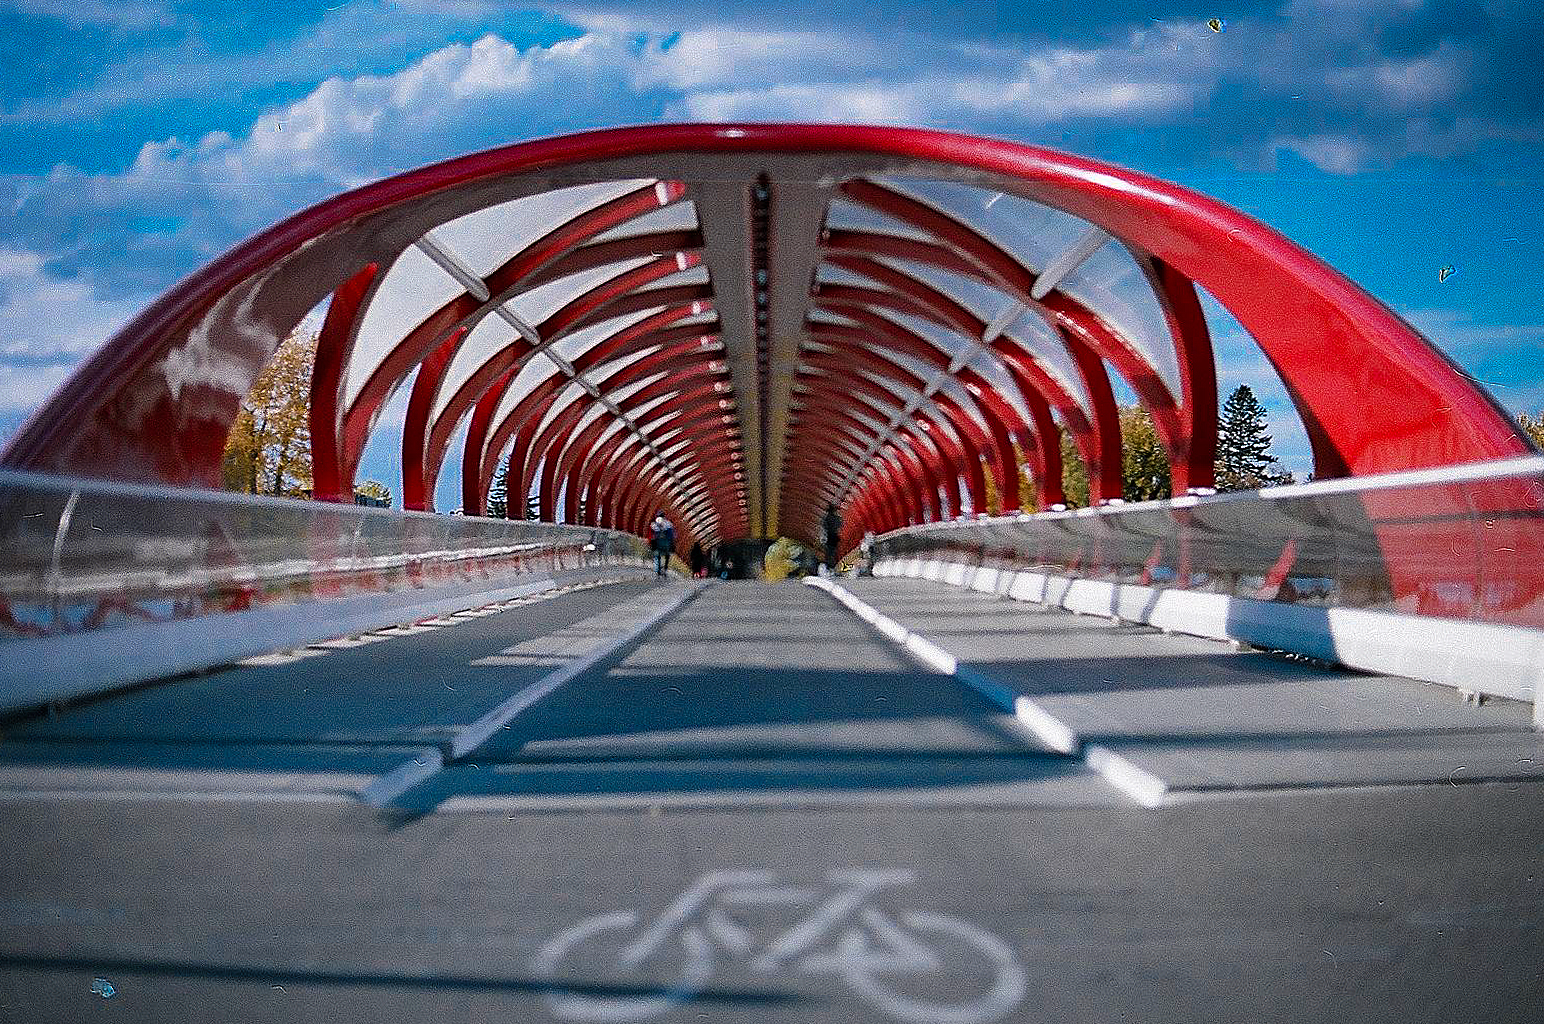 """PEACE BRIDGE"" by ChinitoBoy is licenced under Attribution 2.0 Generic (CC BY 2.0)"